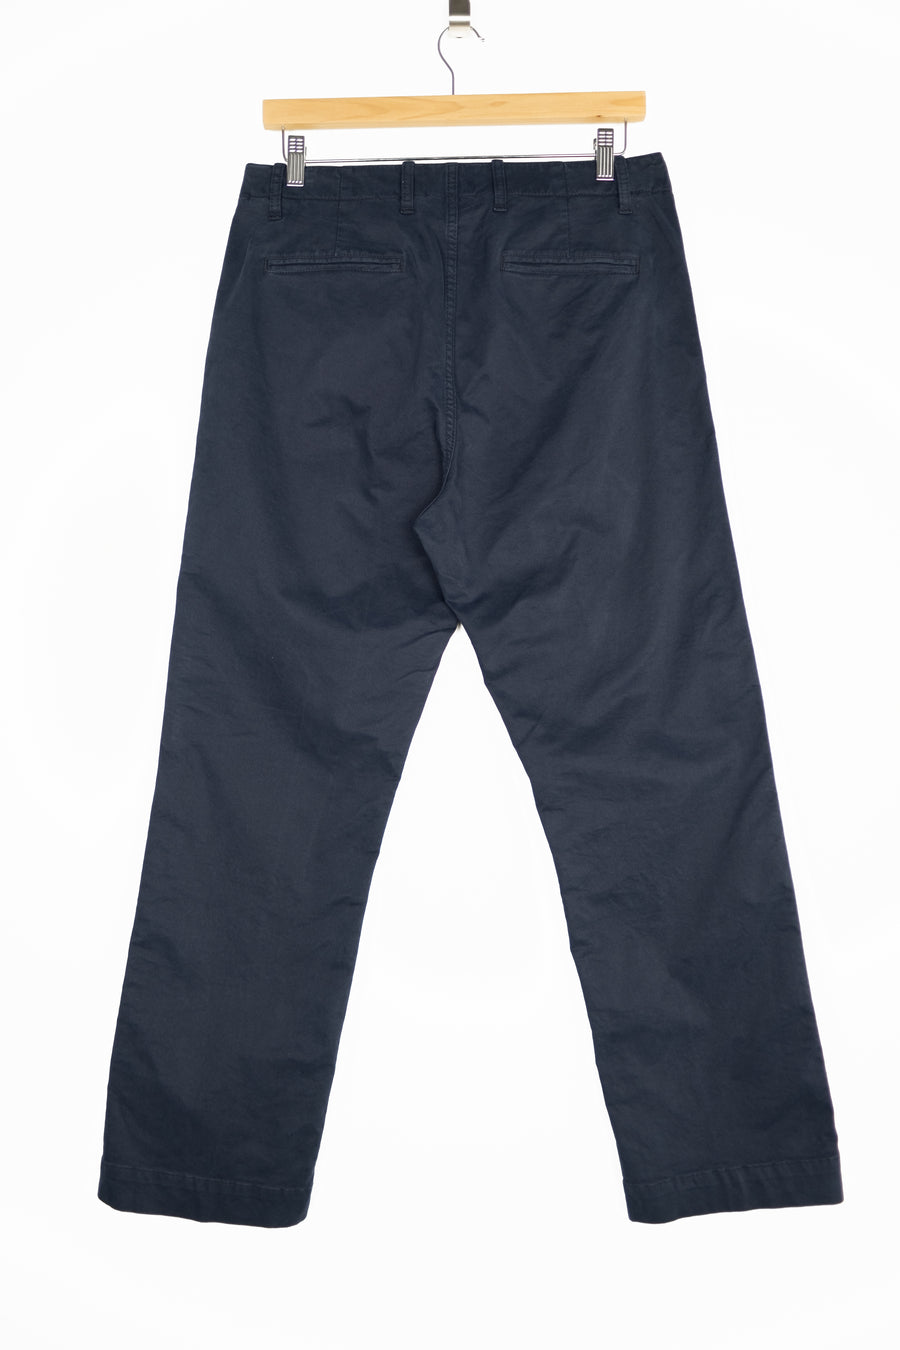 East Harbour Surplus Axel Classic Stretch Chino